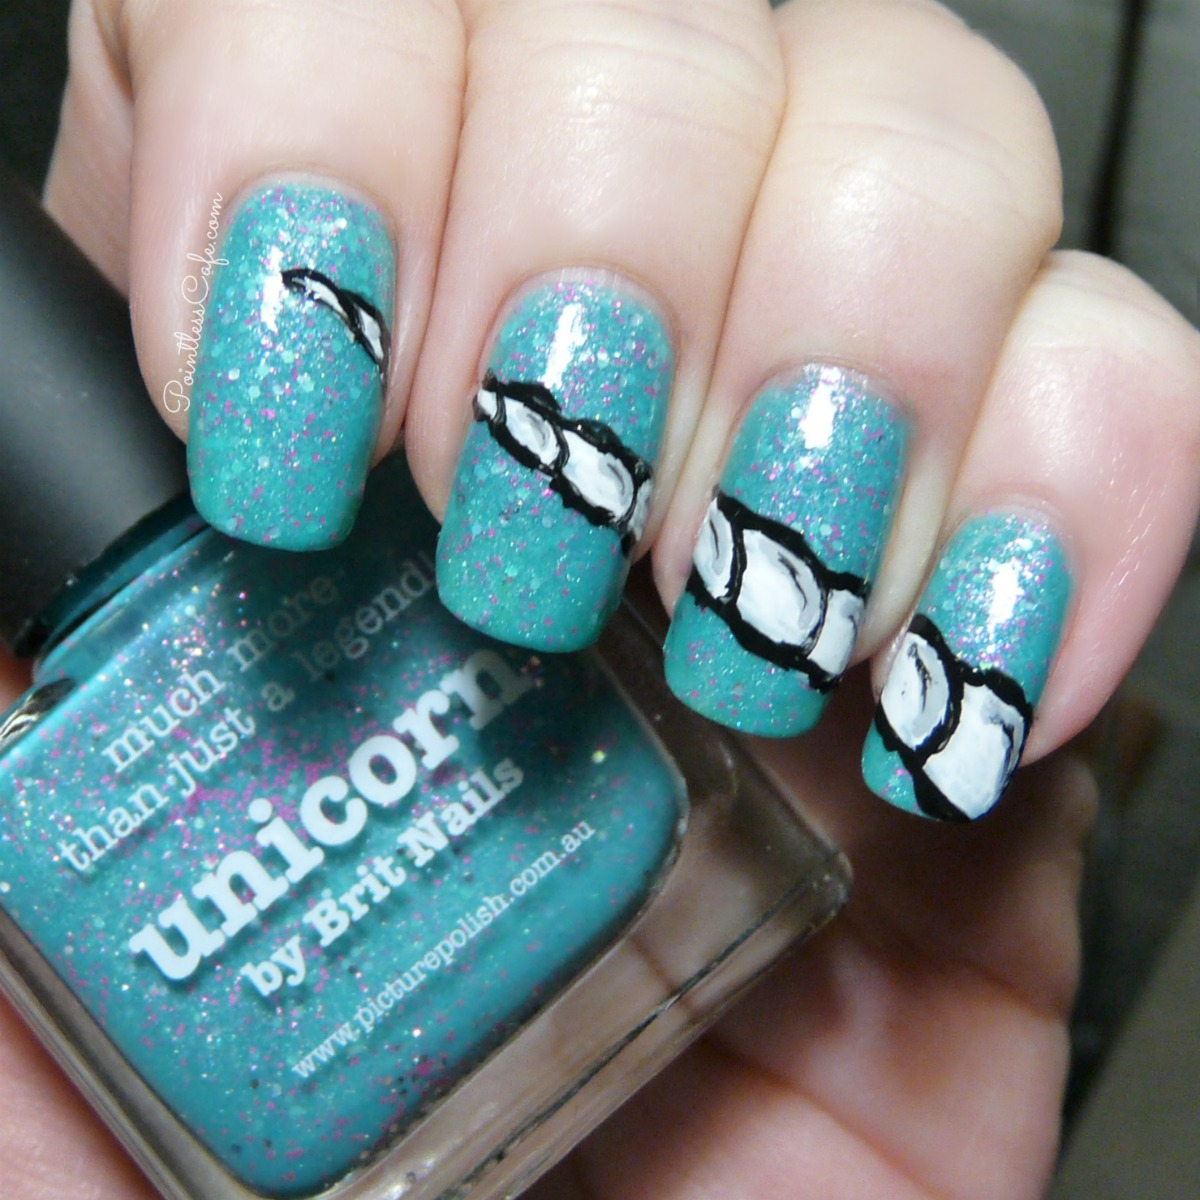 Nail art buy online india – Great photo blog about manicure 2017